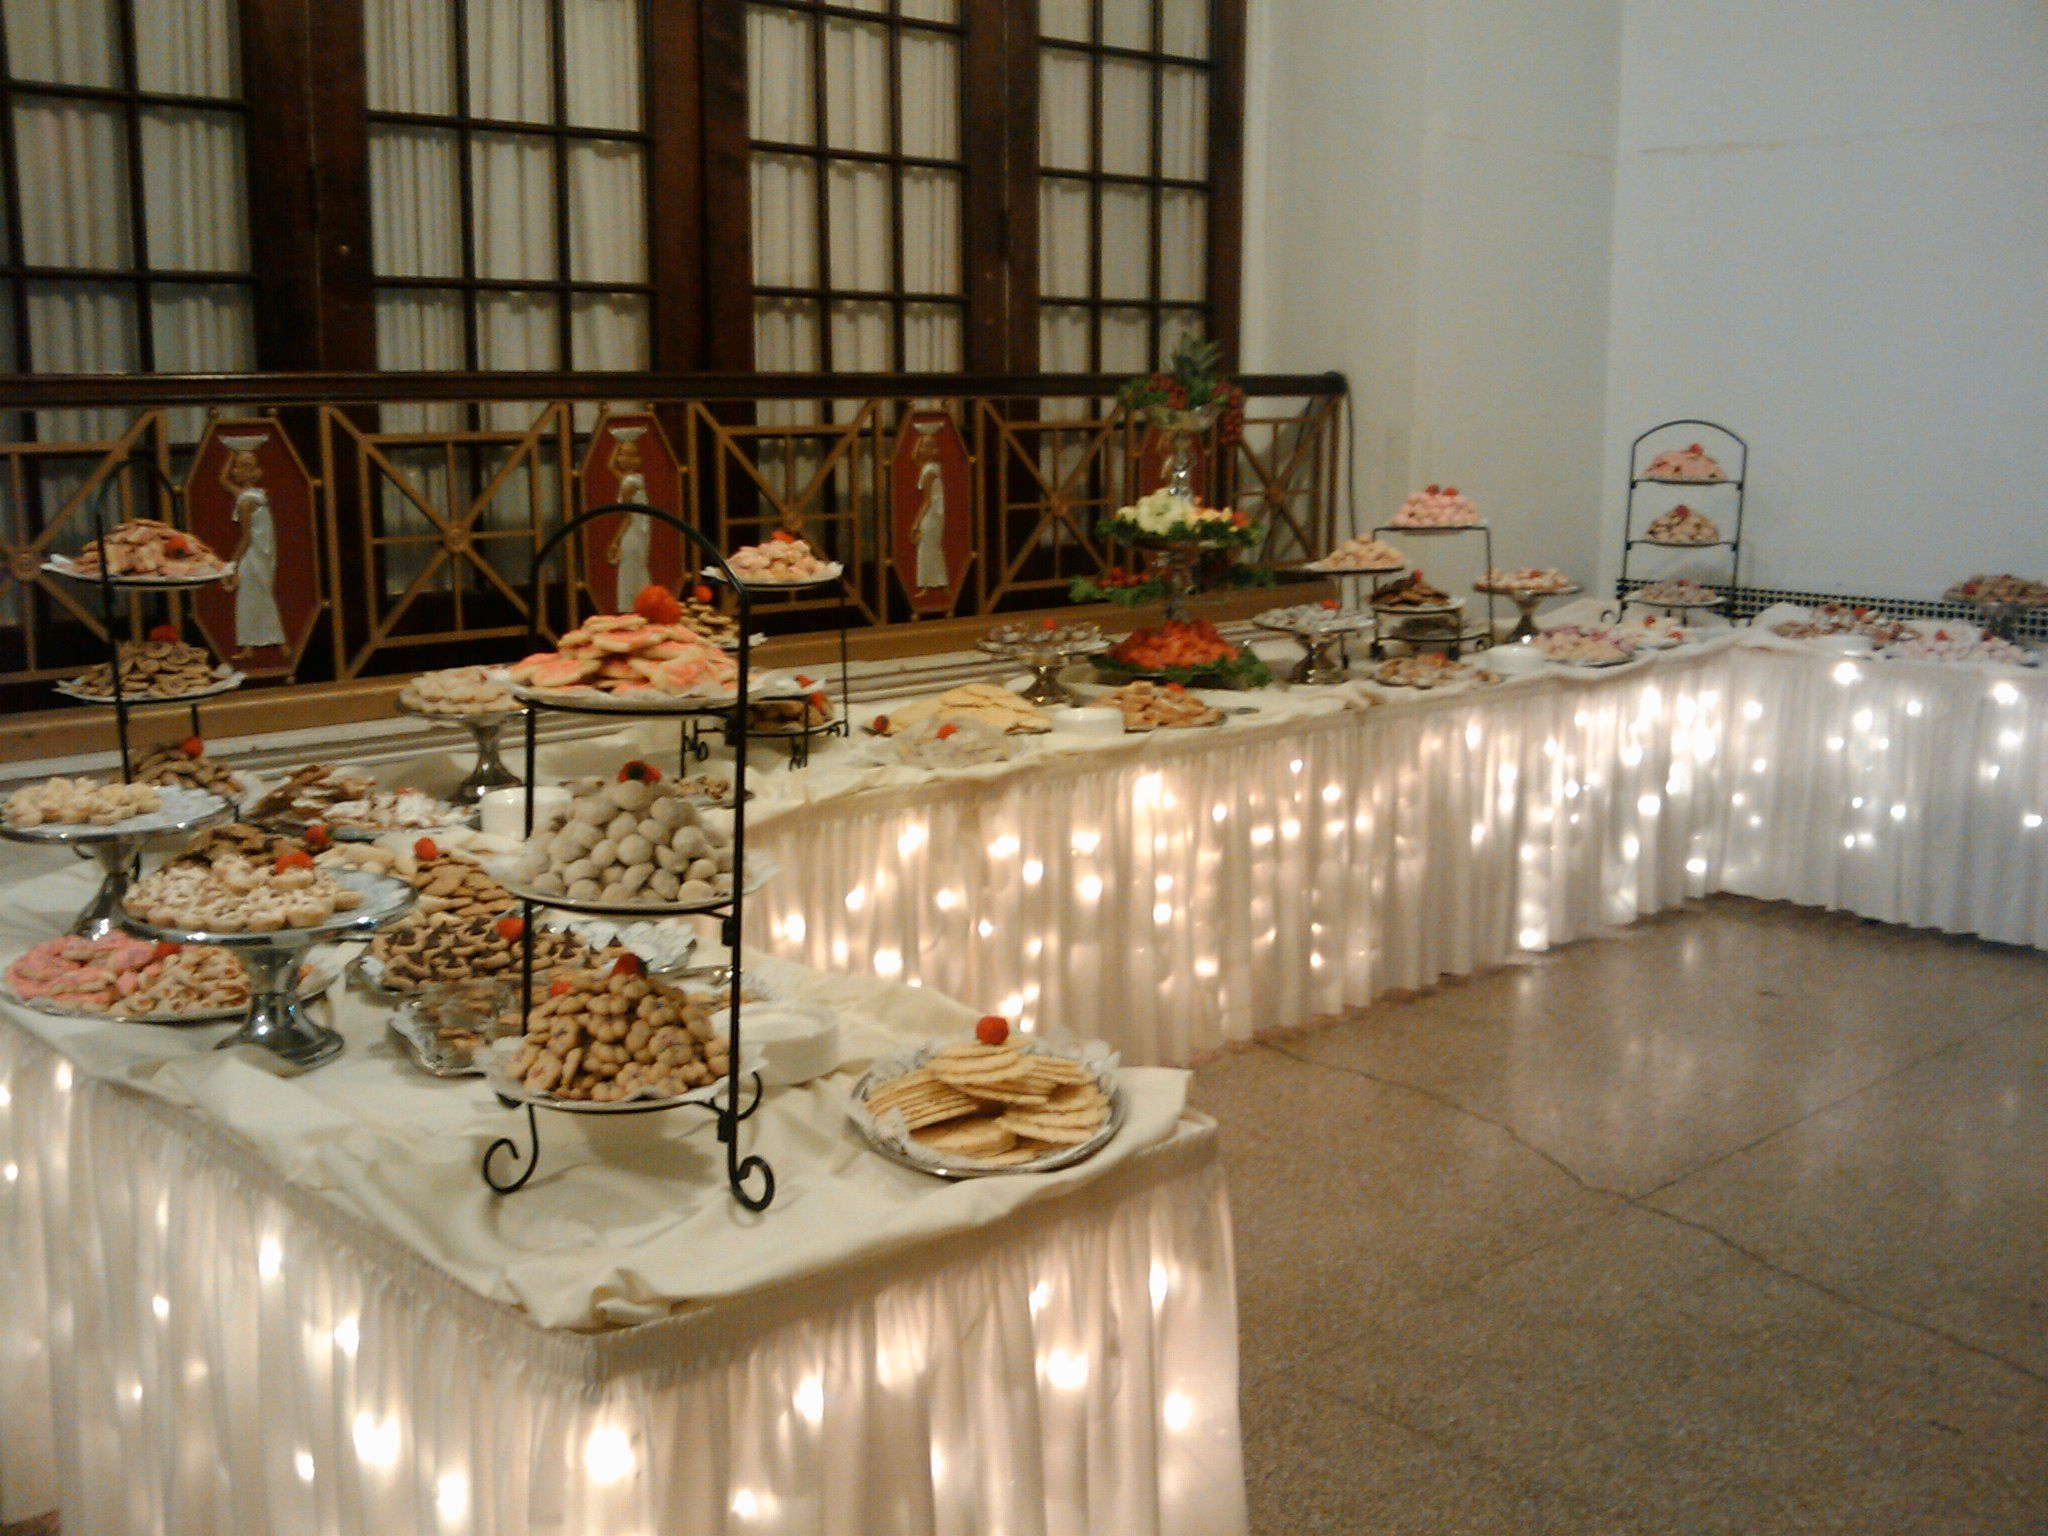 Heres A Look At The Cookie Table Delicious Pittsburgh Wedding Tradition You Are In For Treat When Find Out Little History And How